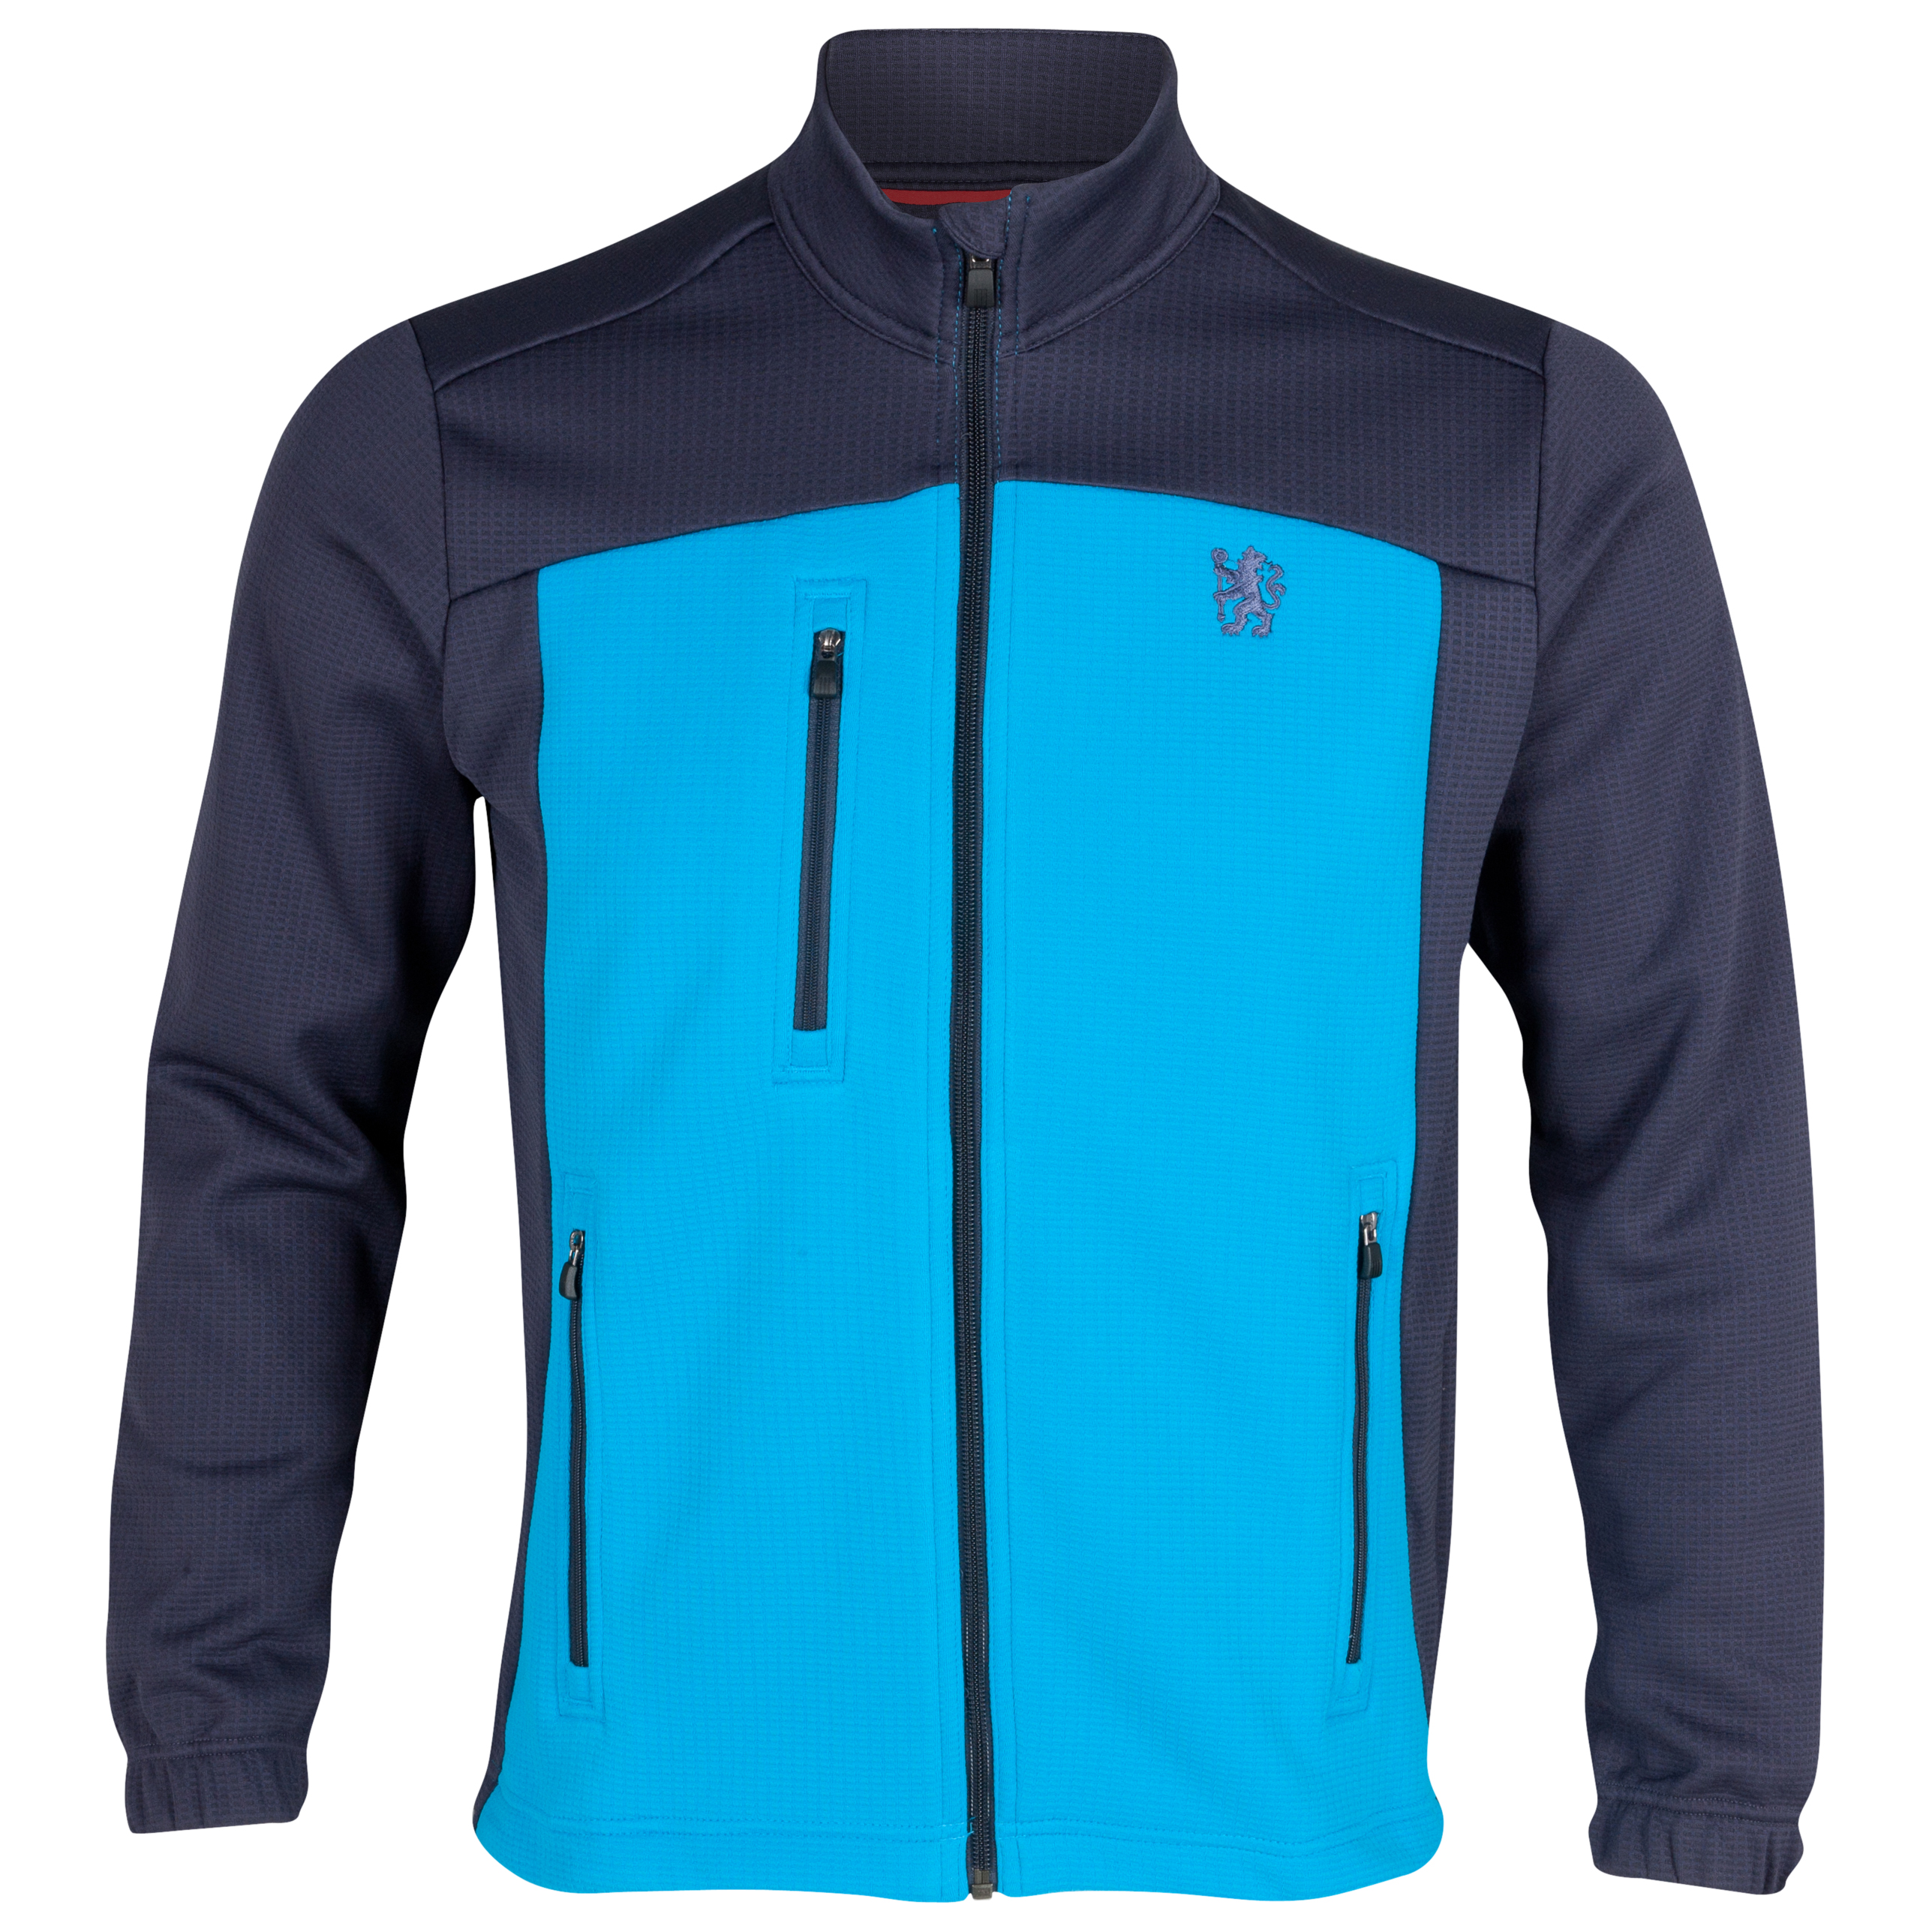 Chelsea Golf ClimaProof Warm 2 Layer Jacket